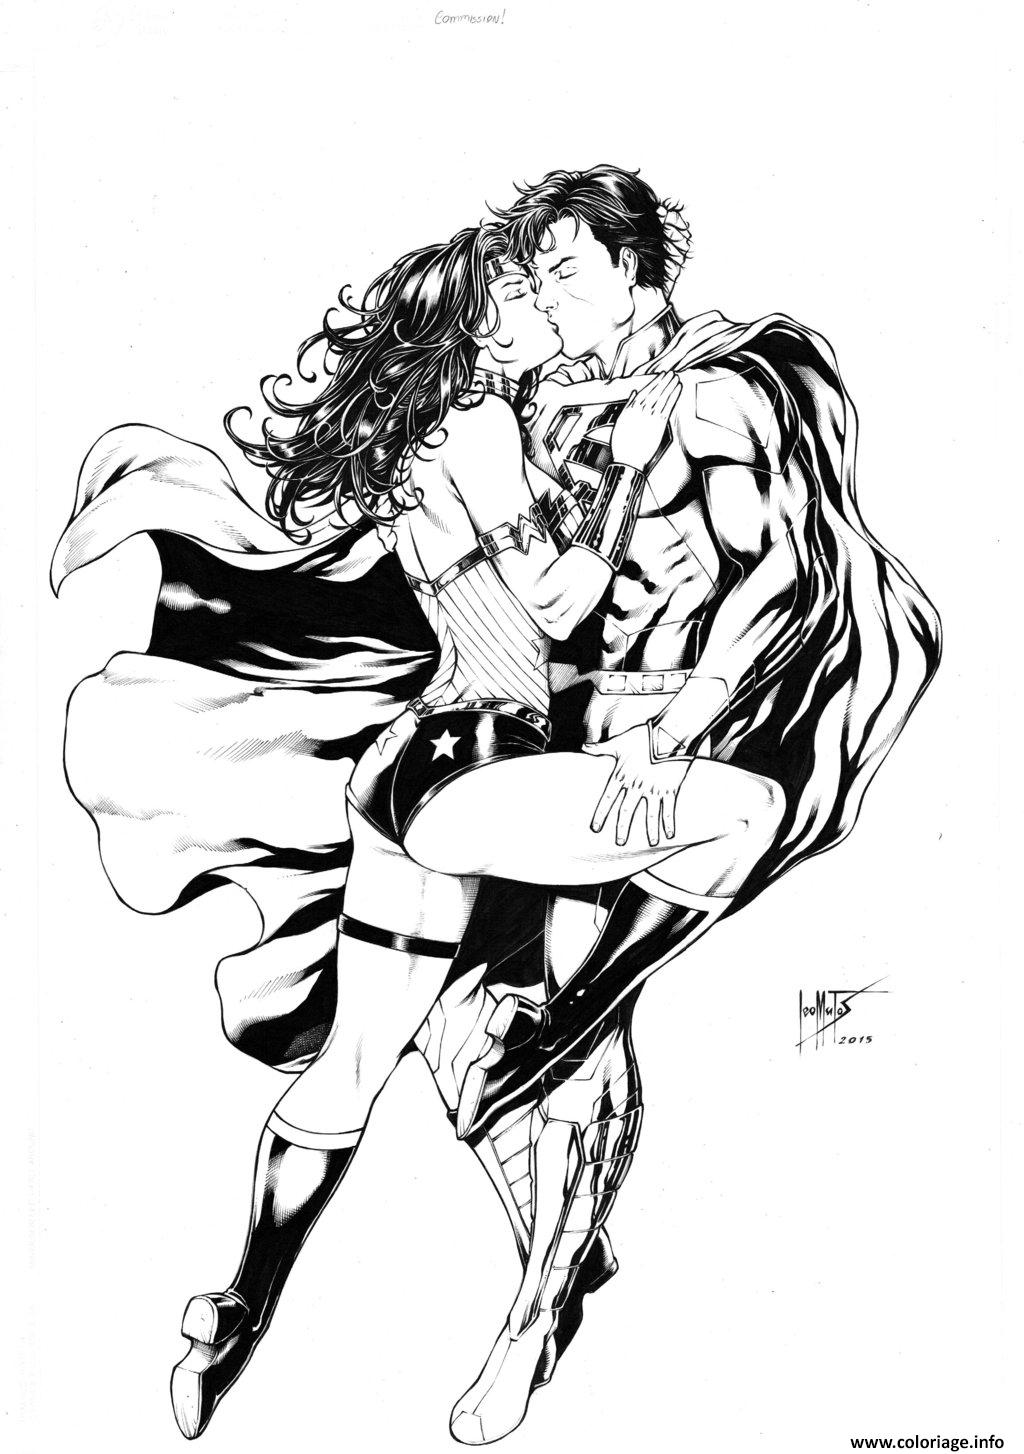 Dessin superman and wonder woman par leomatos dc comics Coloriage Gratuit à Imprimer